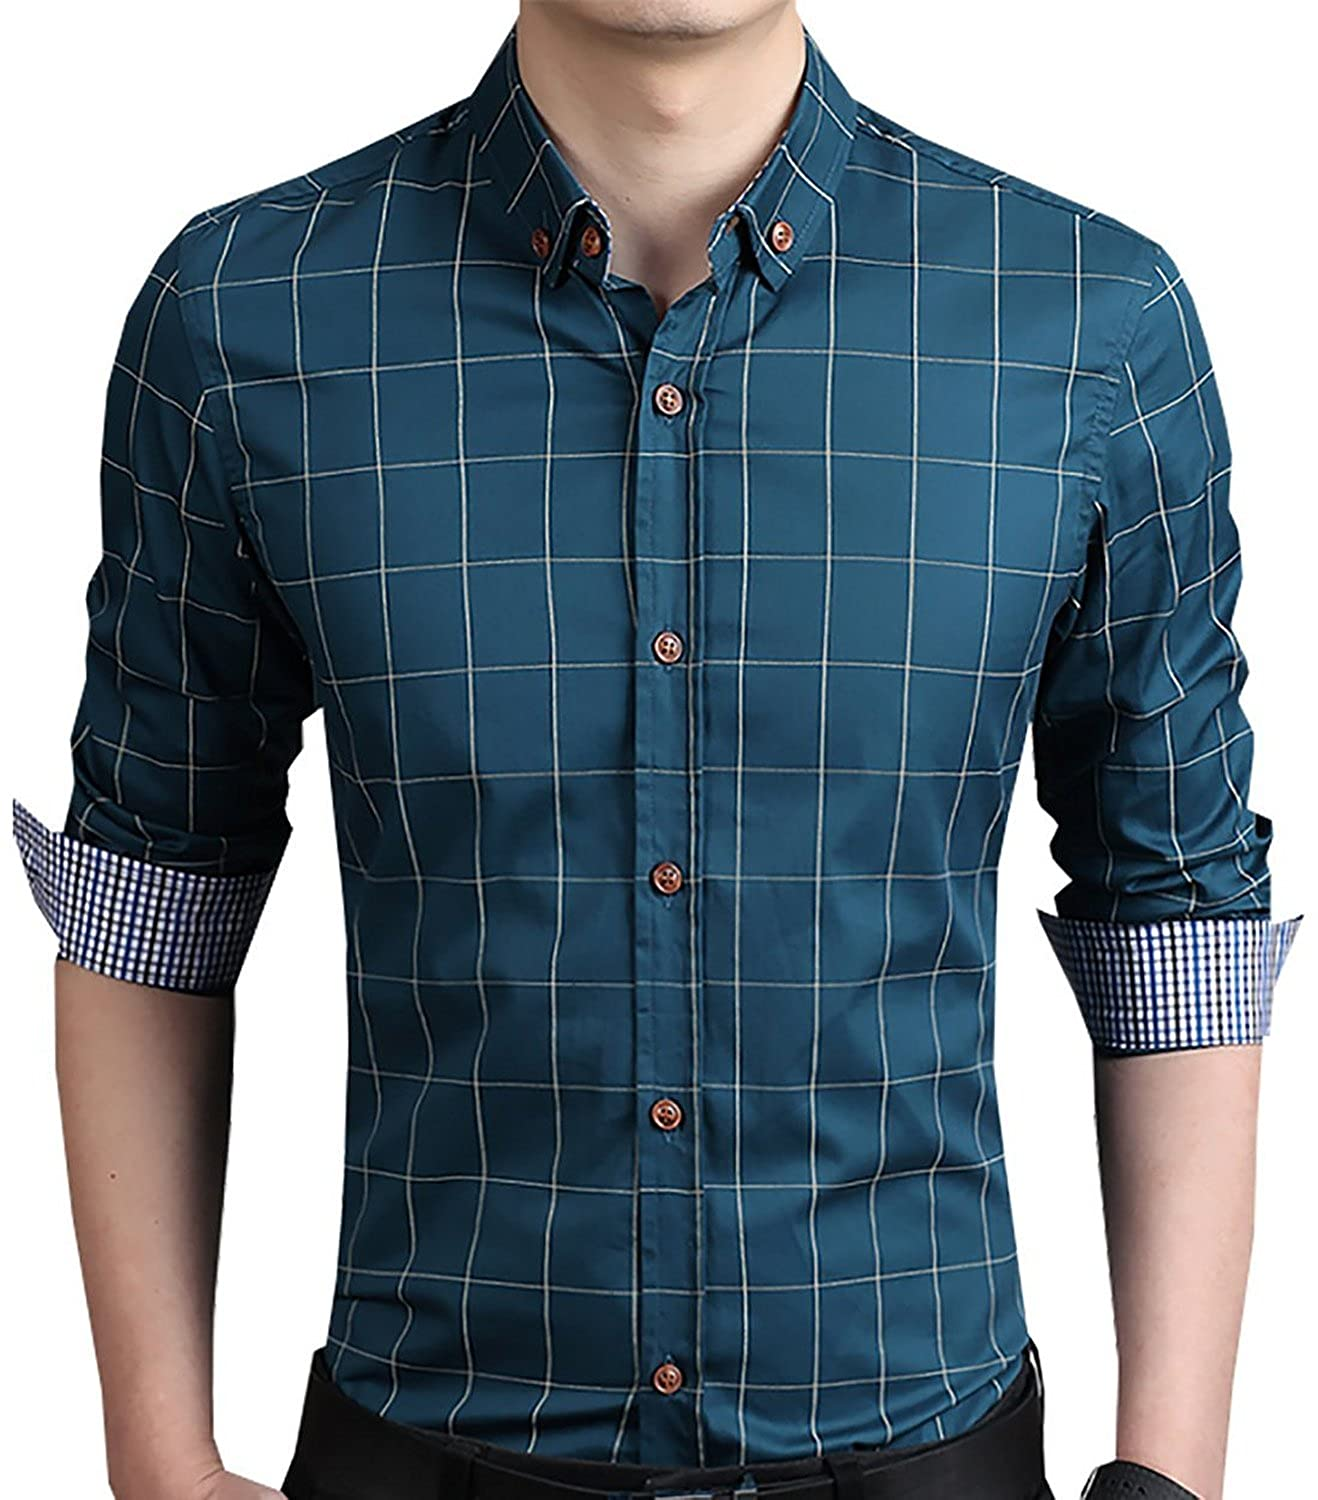 548b4aee338d YTD Men s 100% Cotton Long Sleeve Plaid Slim Fit Button Down Dress Shirt at  Amazon Men s Clothing store